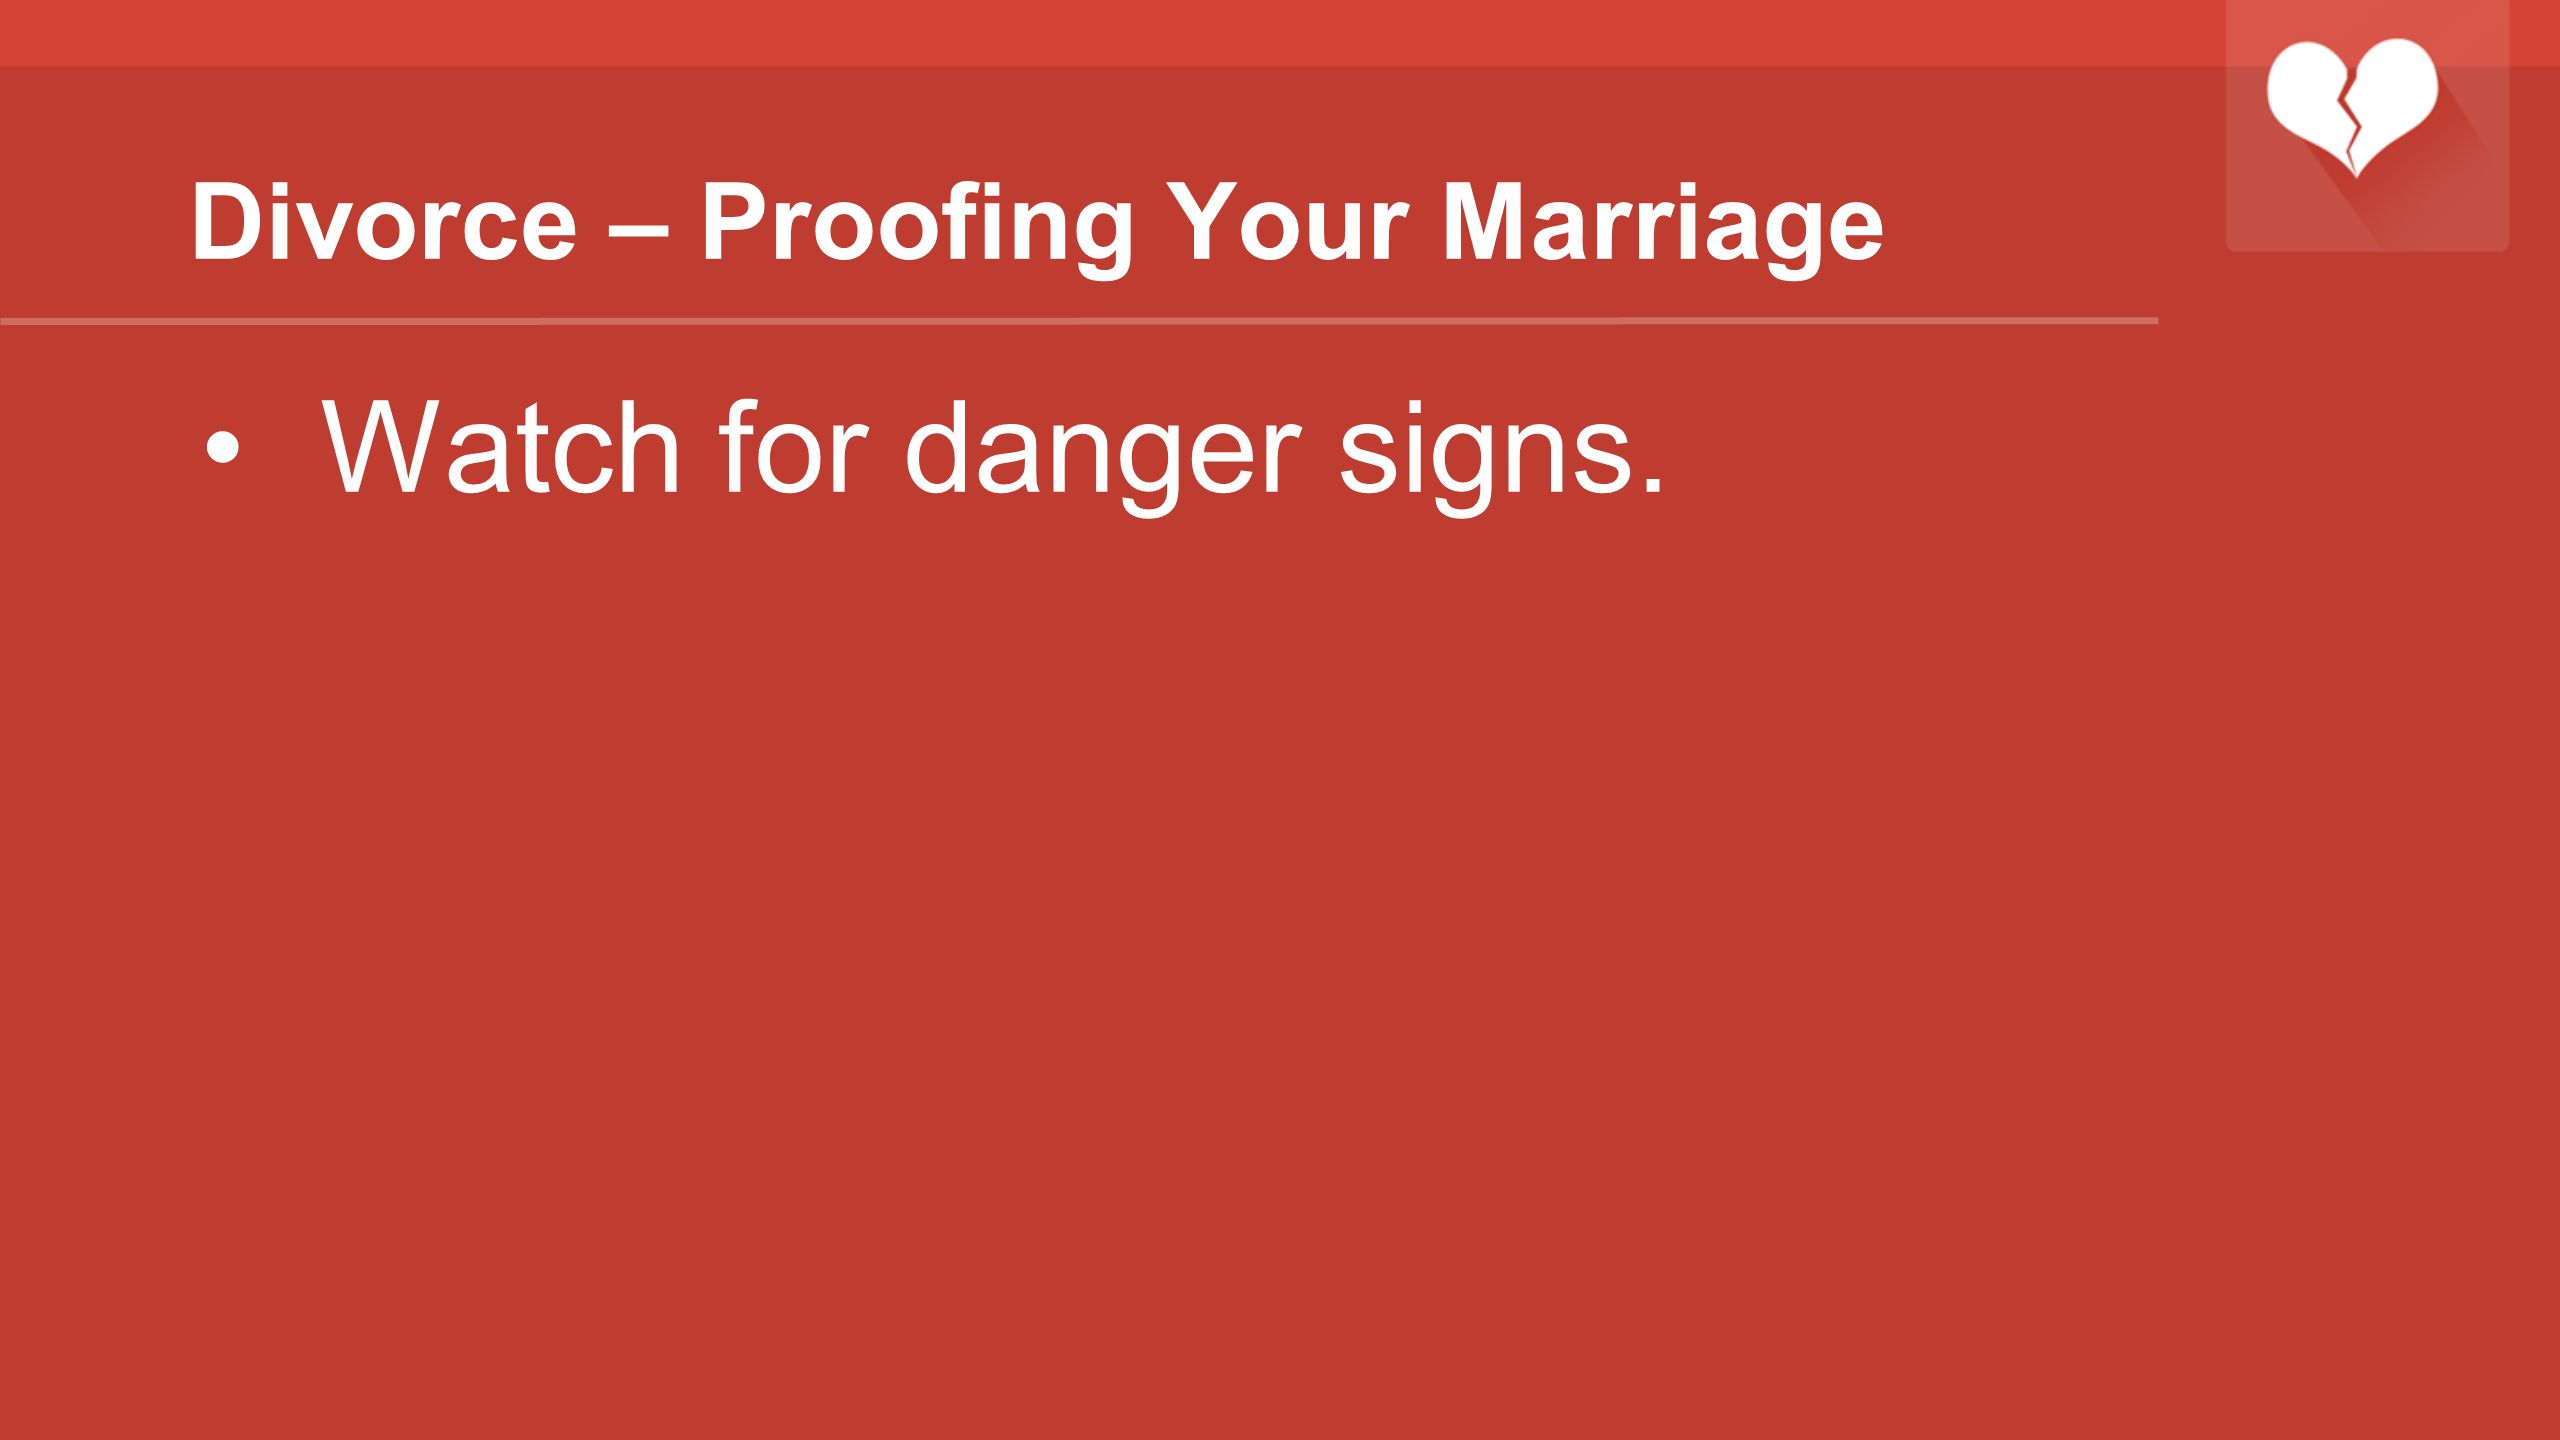 Divorce – Proofing Your Marriage